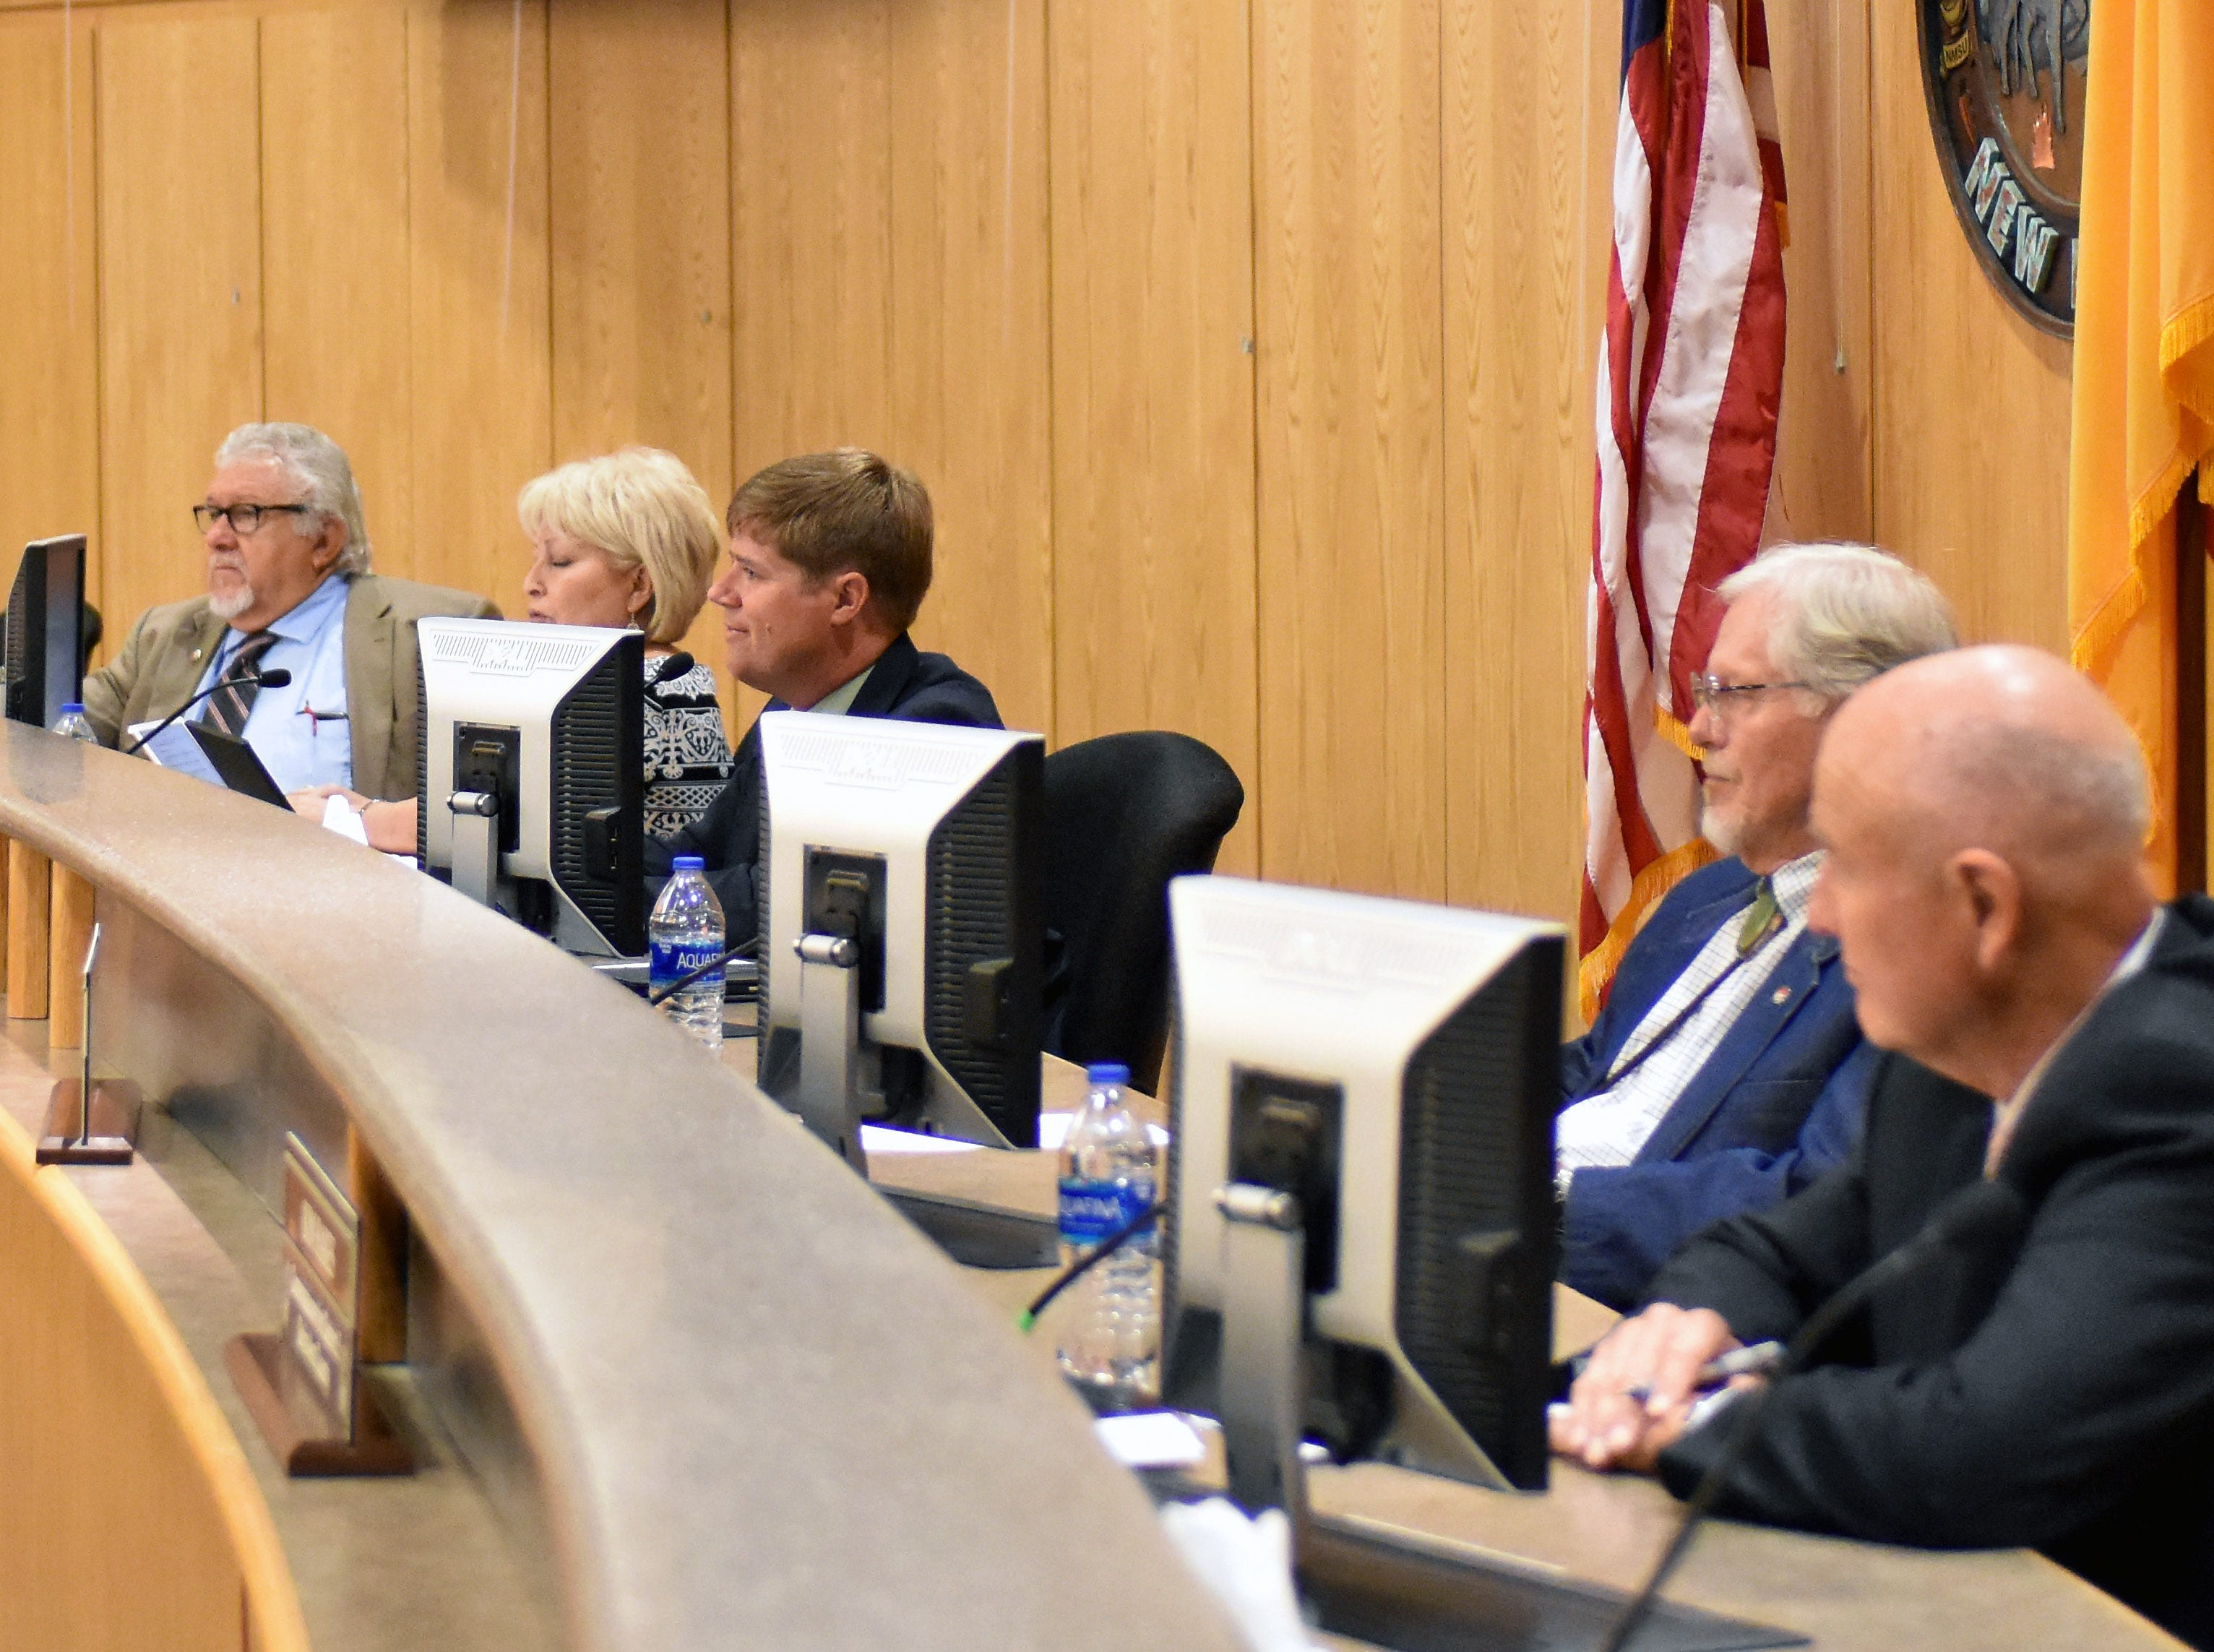 The Doña Ana Board of County Commissioners listens to residents during a special meeting on Tuesday, Sept. 4, 2018, held in regard to a possible straight-party option for voters in New Mexico.